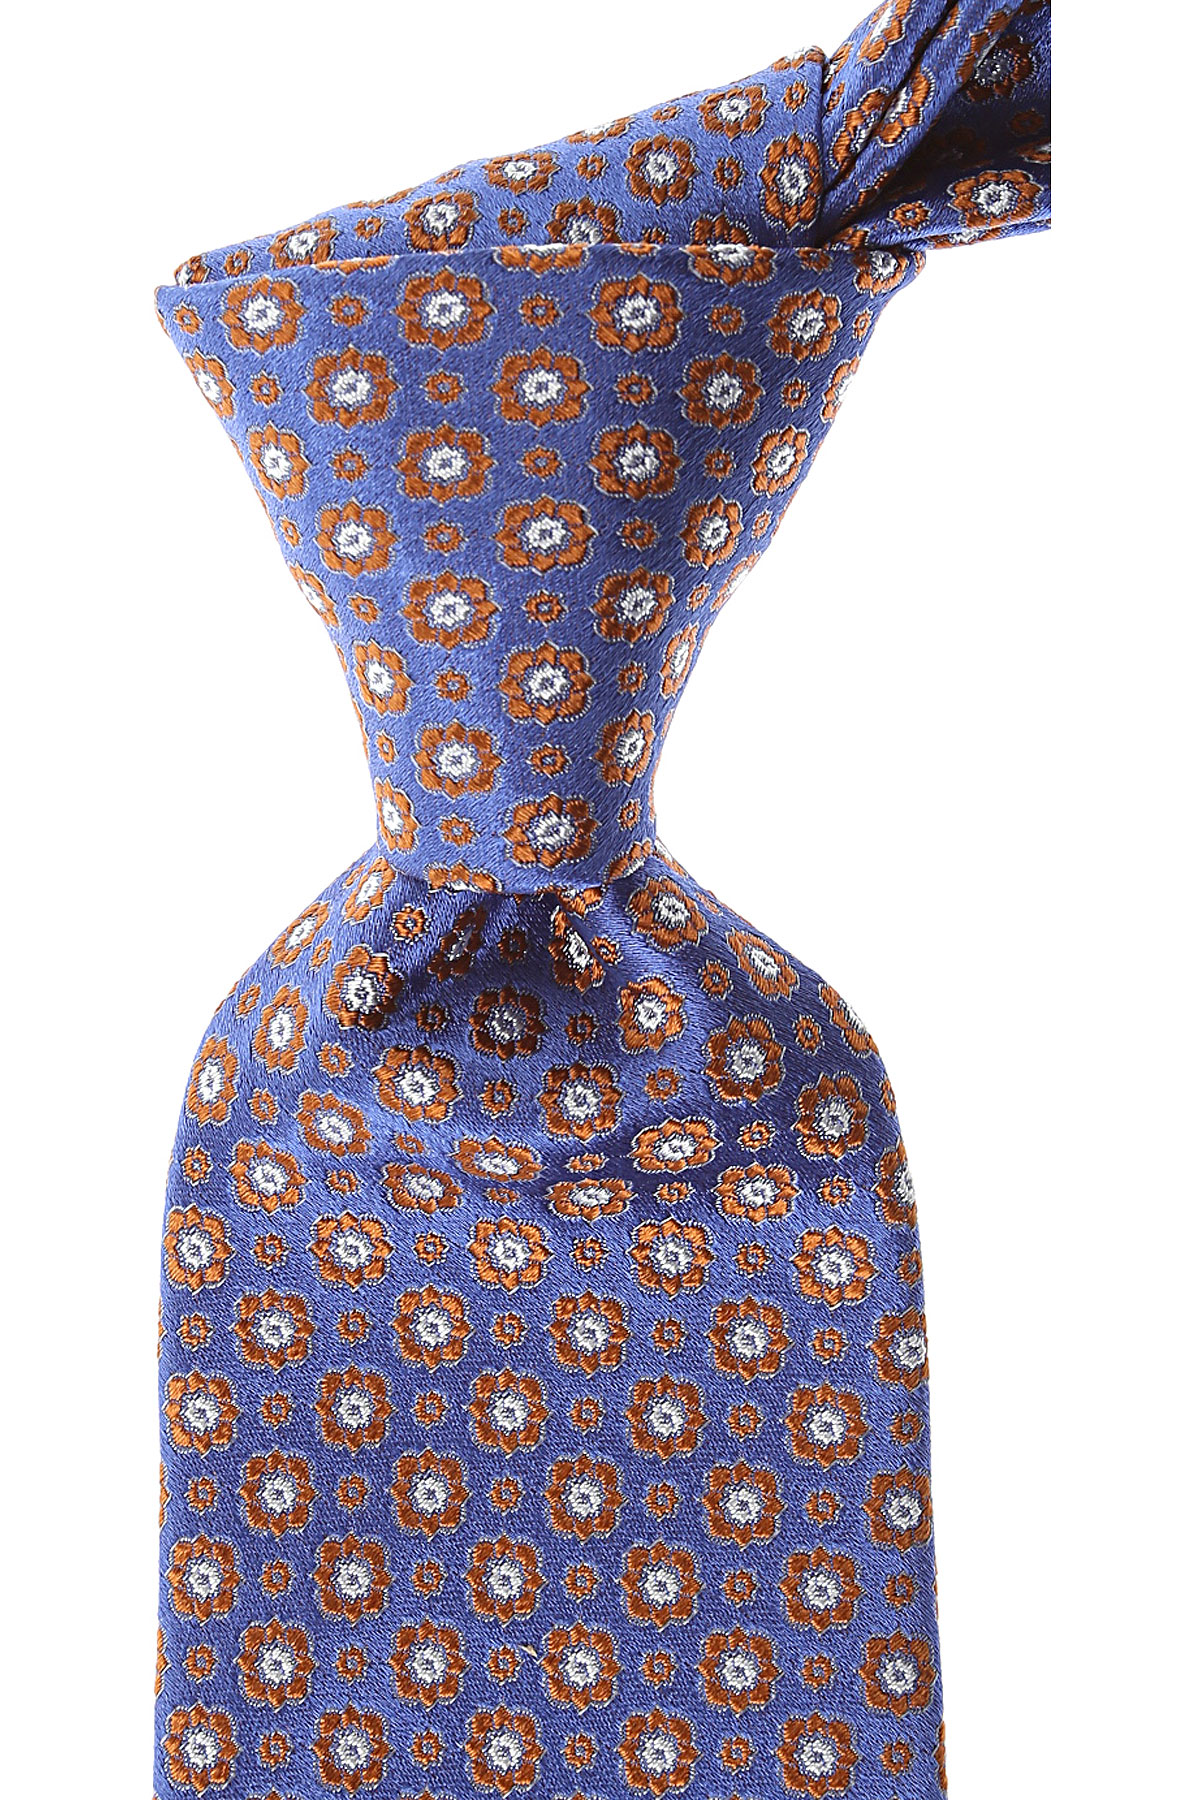 Canali Ties On Sale, Changing Sky Blue, Silk, 2019